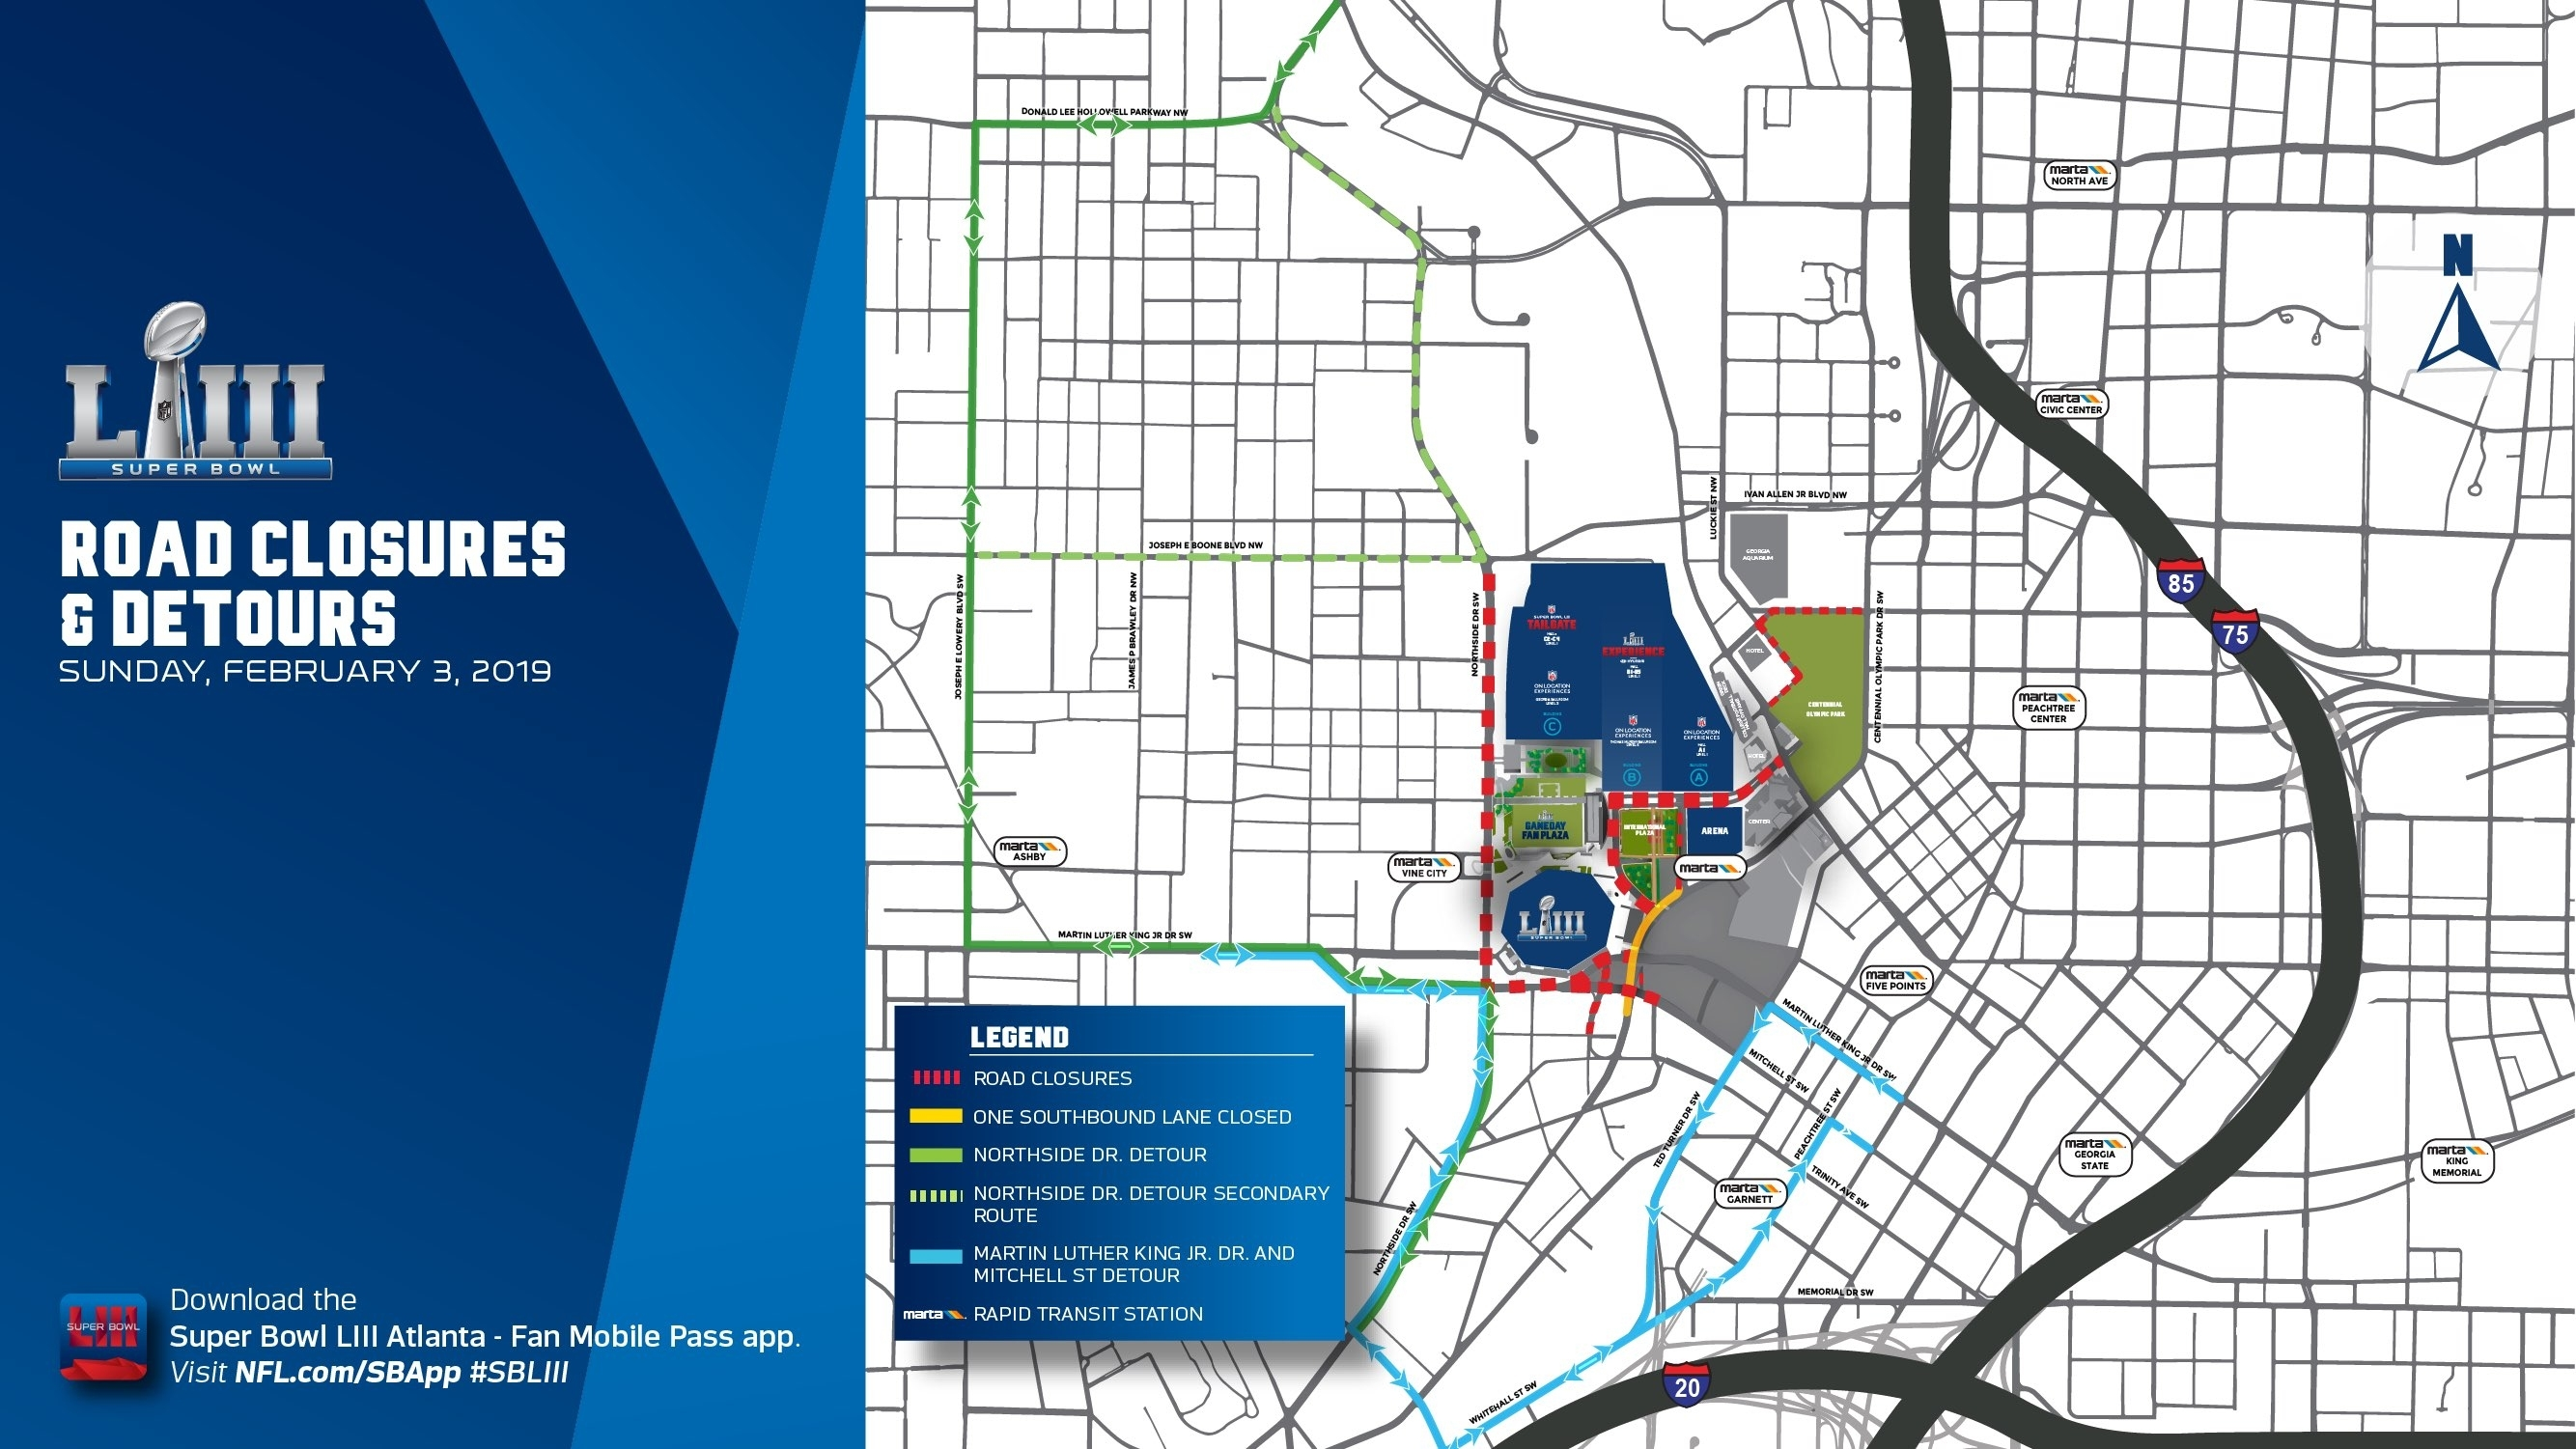 Gameday-Road-Closure-Map Copy - Mercedes Benz Stadium pertaining to Super Bowl Fan Map 2019